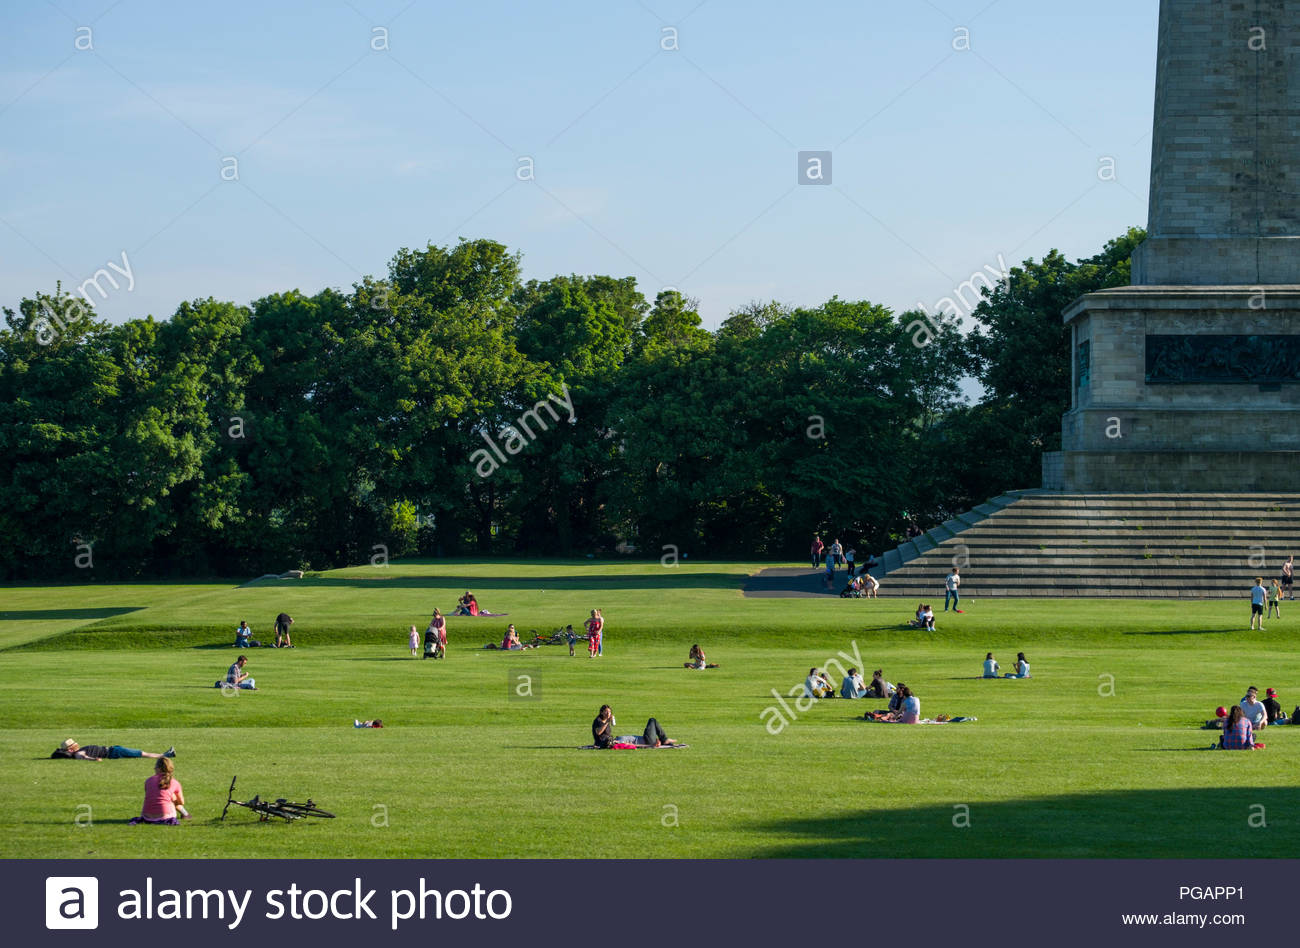 Many people sitting in groups on the green lawn enjoying the afternoon sunshine at the Wellington Monument in Phoenix Park, Dublin, Leinster, Ireland Stock Photo